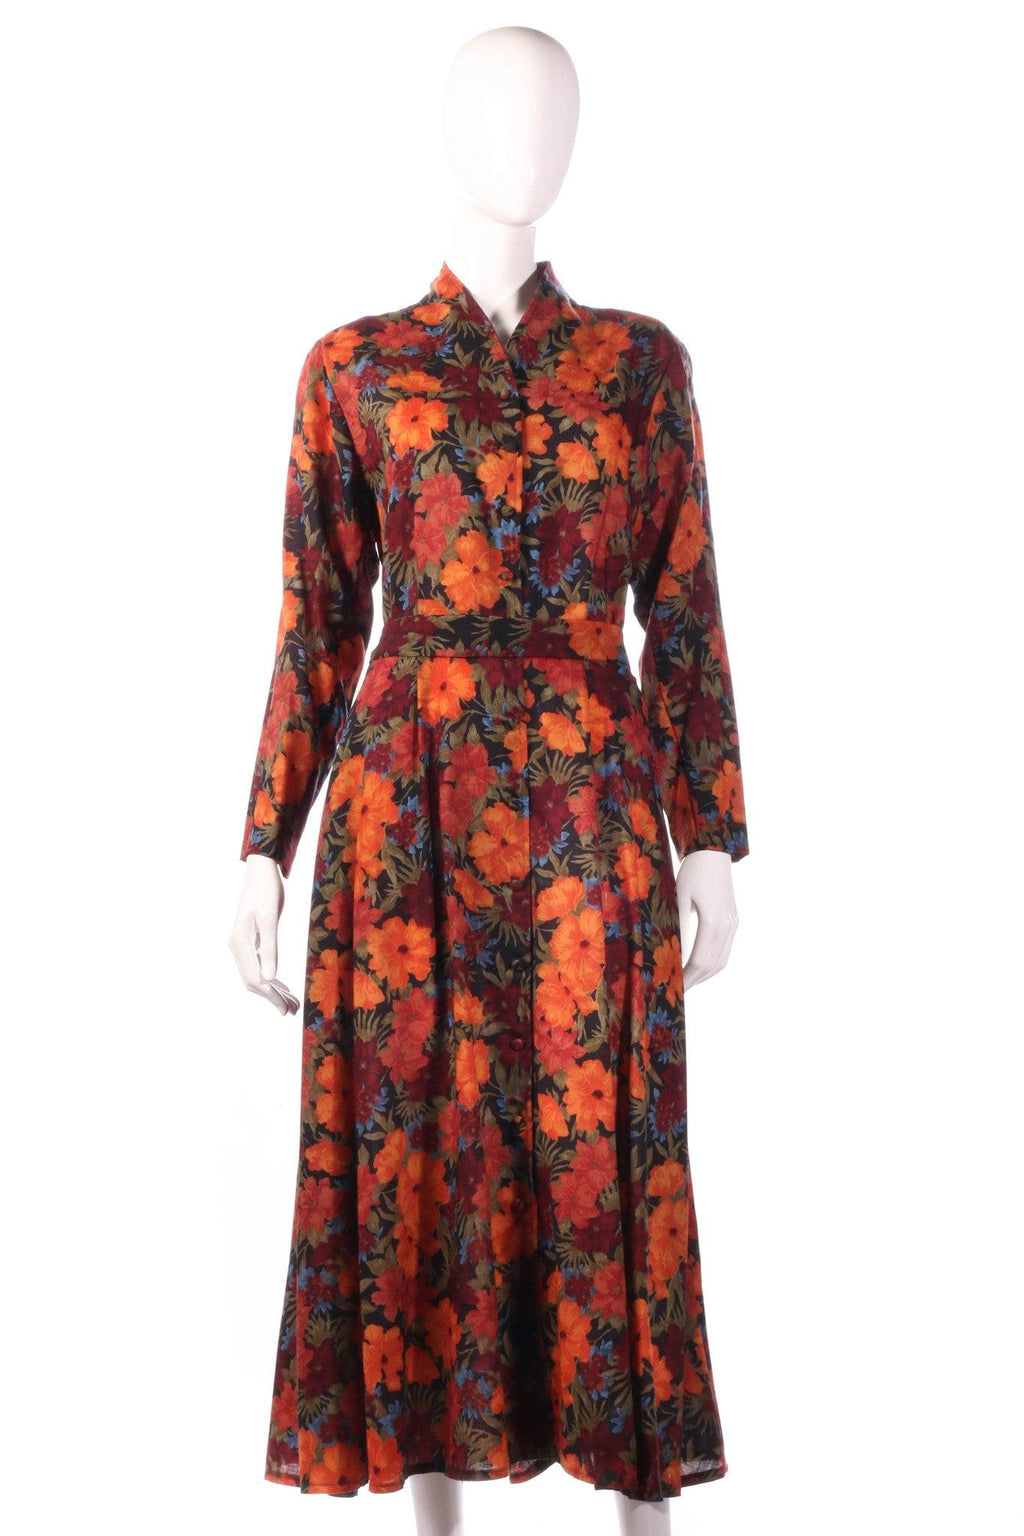 Liberty red dress with orange floral pattern